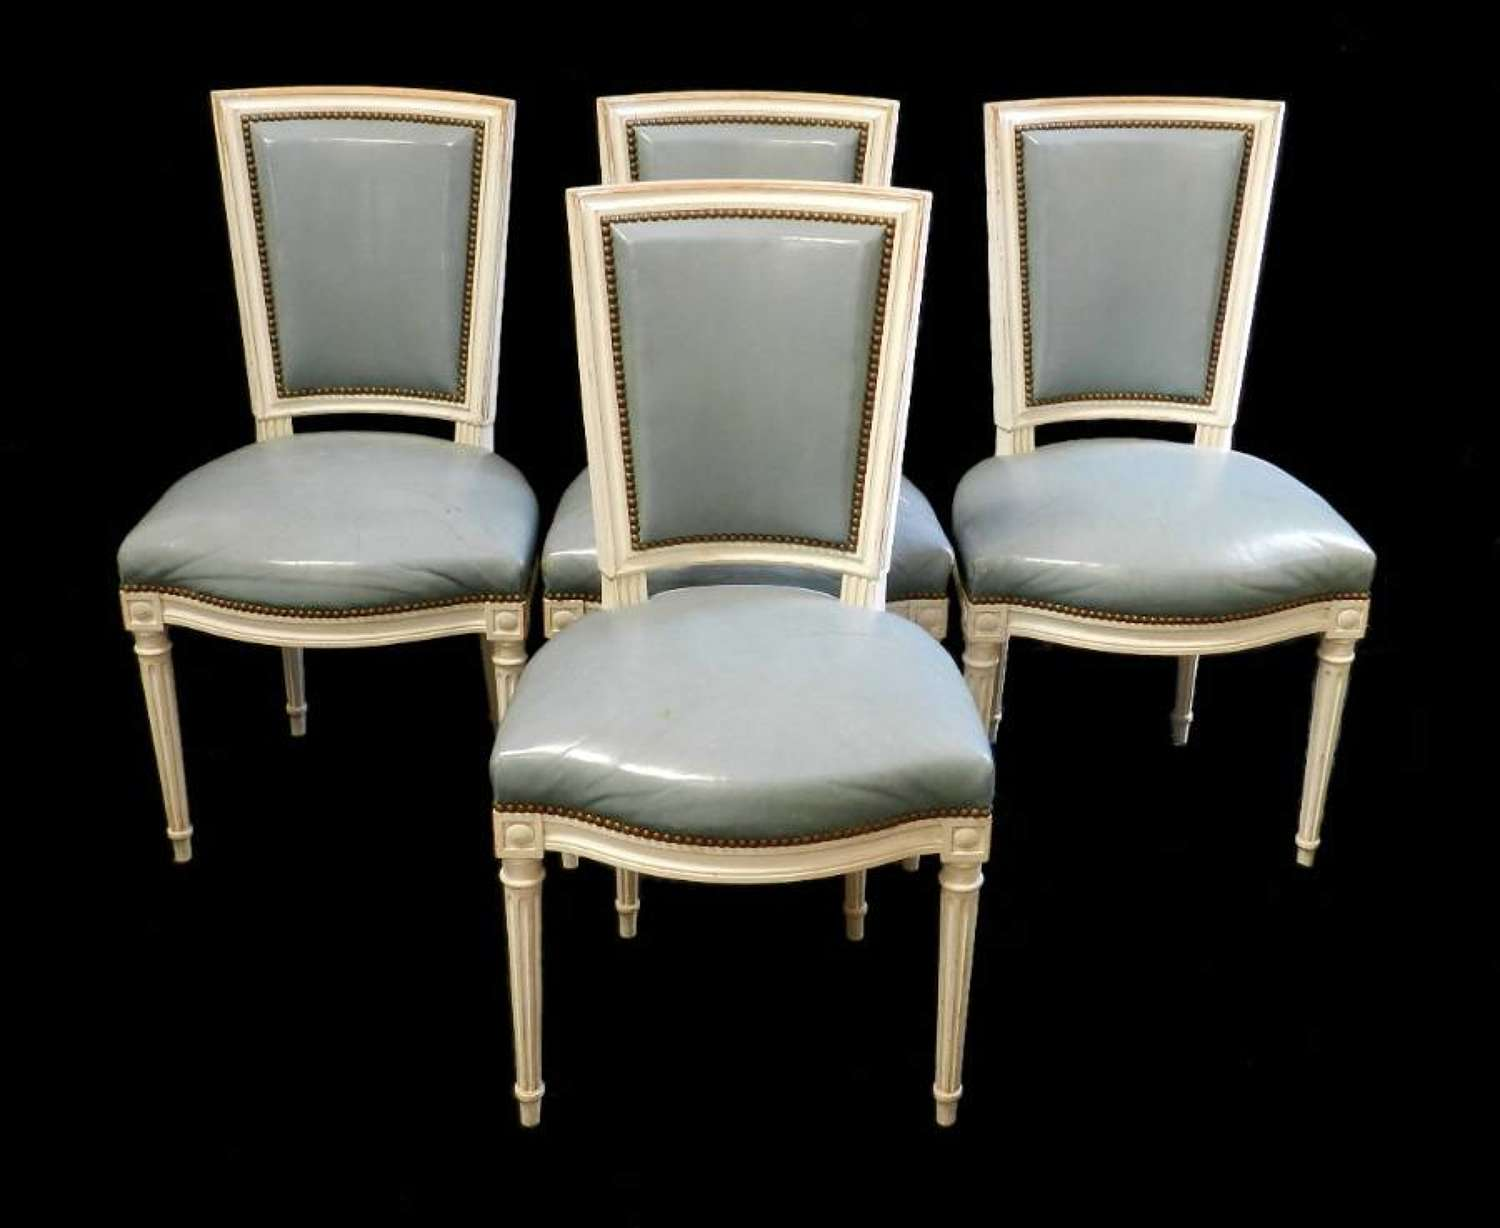 4 early C20 French Chairs Blue Leather